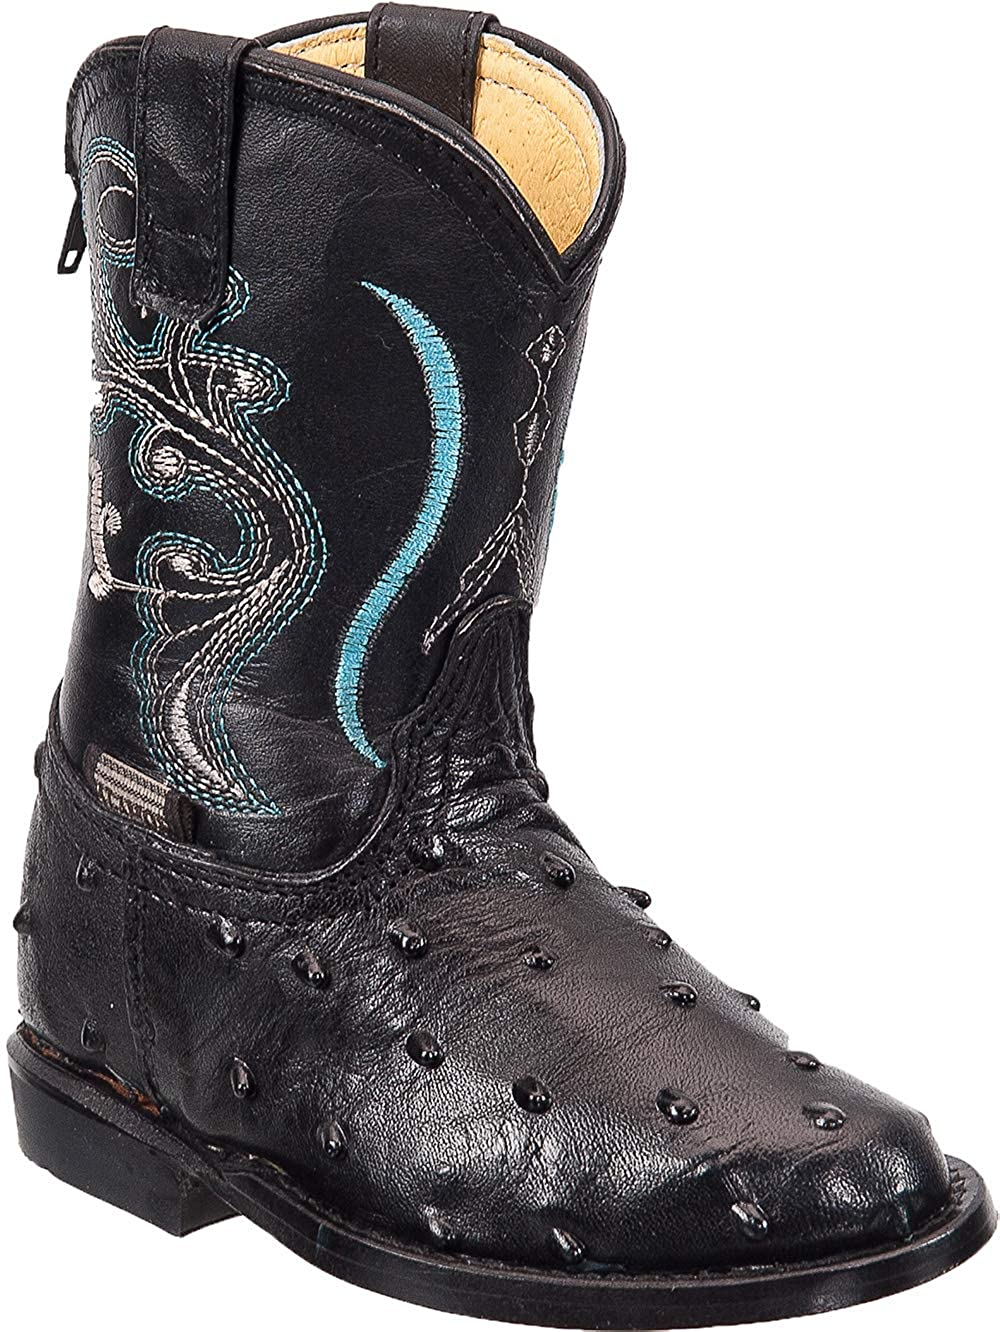 Kids Cowboy Boot Infant Toddler Ostrich Print Western Boot